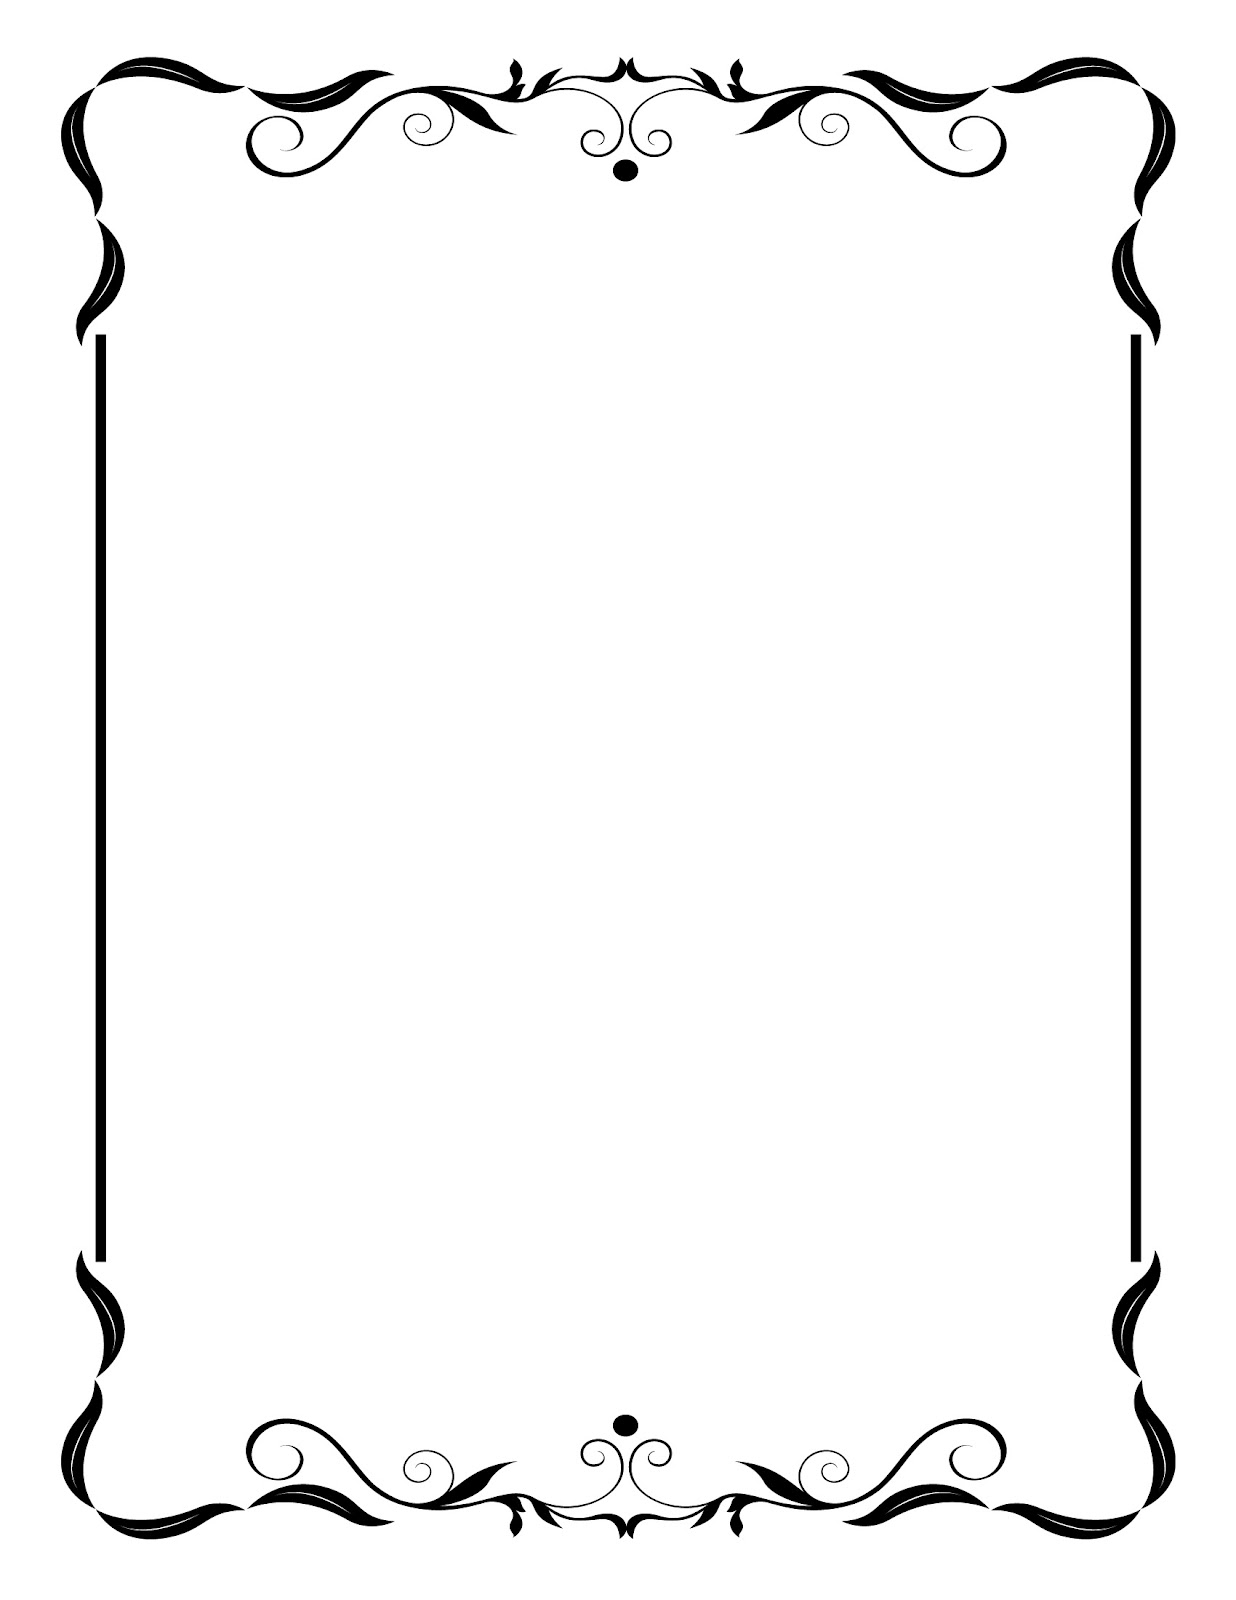 Clipart frames for photos graphic freeuse download Frames and clipart PNG and cliparts for Free Download - Clipart ... graphic freeuse download